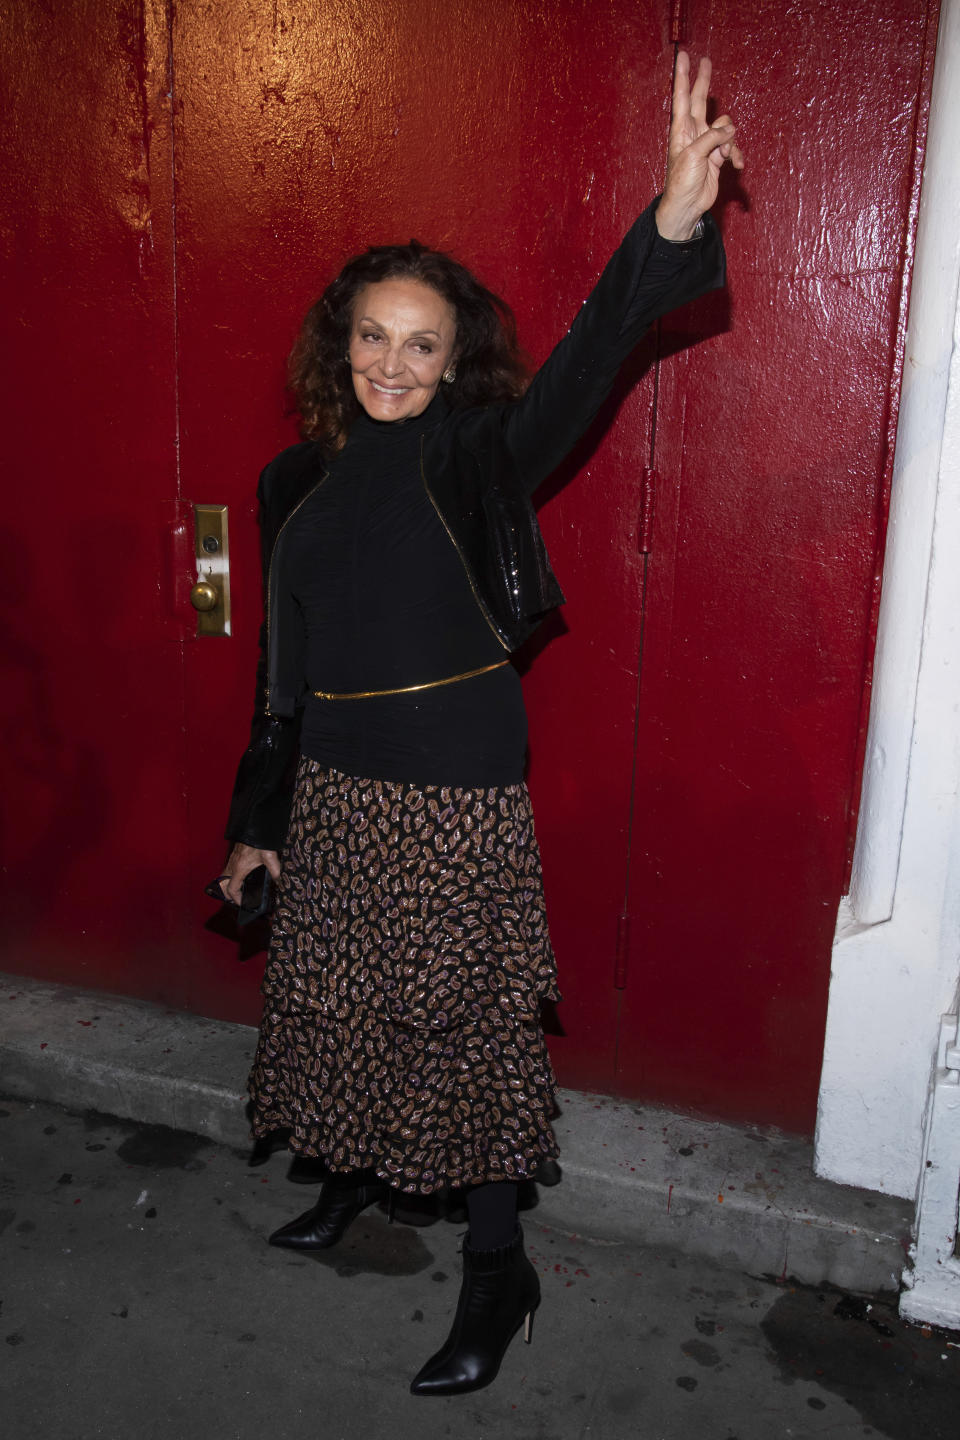 Diane von Furstenberg arrives to the Tom Ford show during Fashion Week on Monday, Sept. 9, 2019 in New York. (Photo by Charles Sykes/Invision/AP)